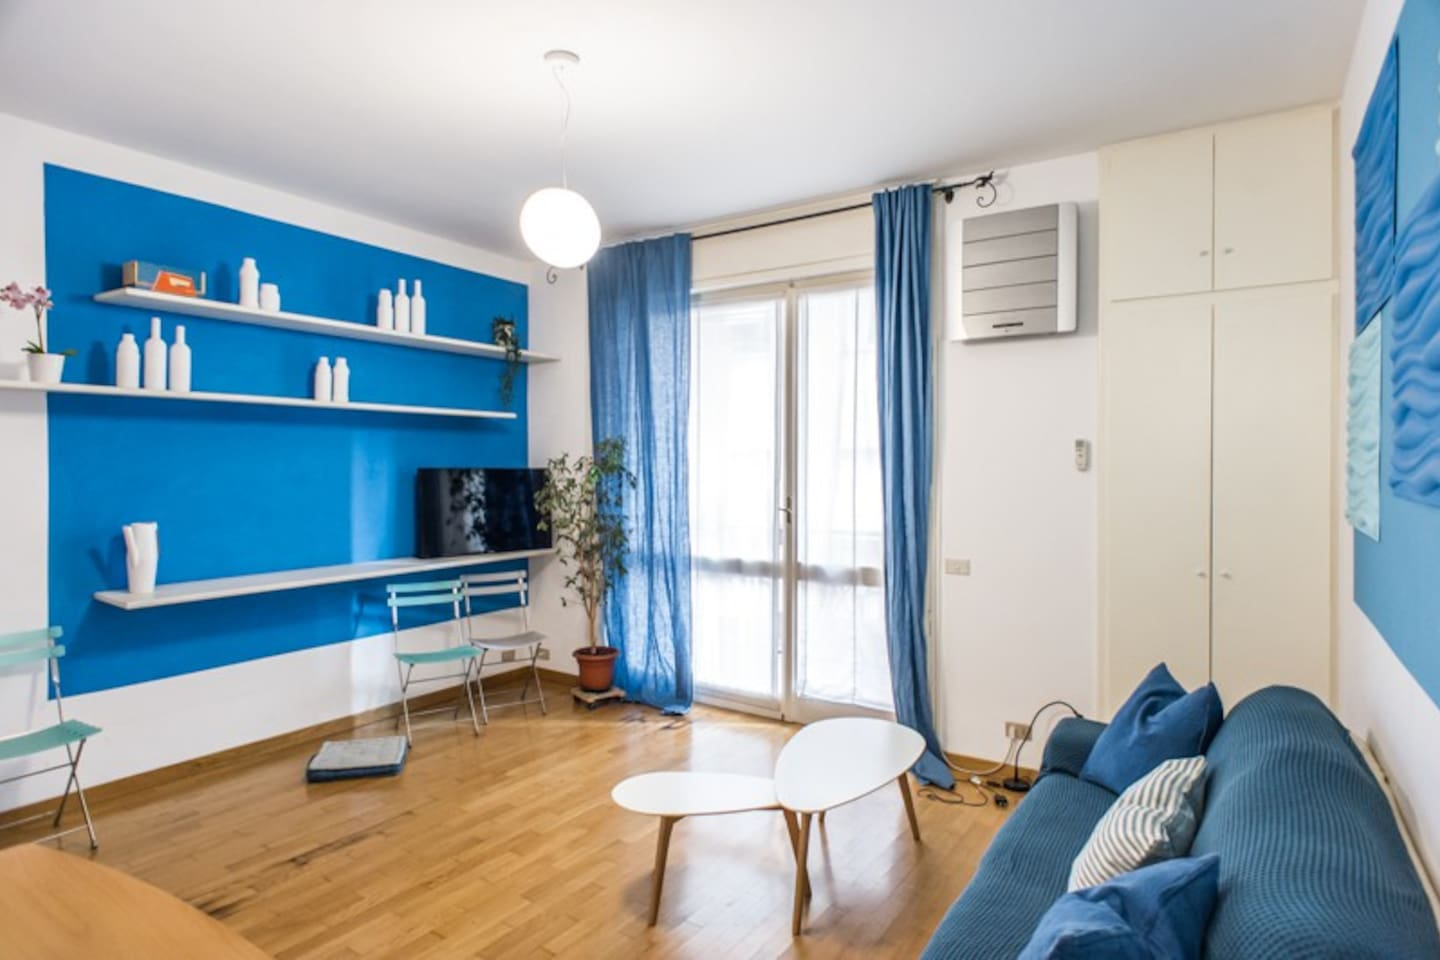 The living room is spacy, bright and finely decorated